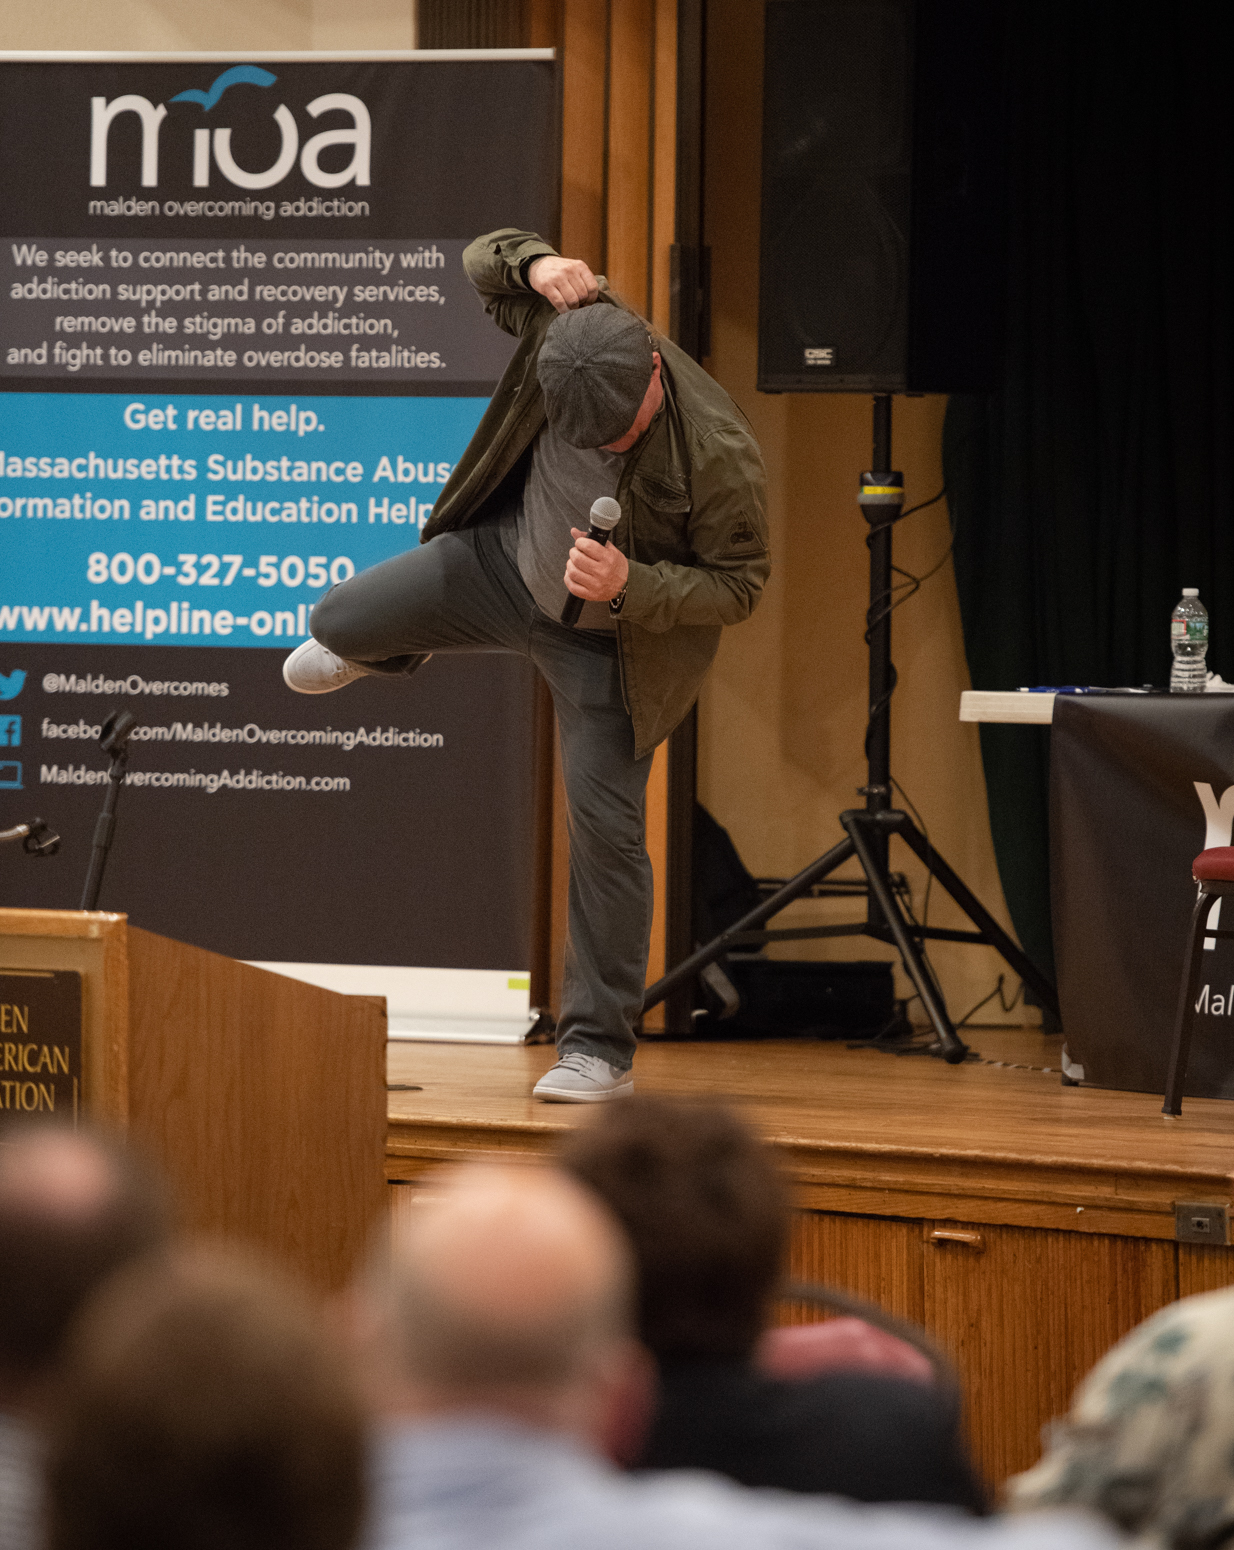 2nd-annual-togetherwecan-moa-comedy-night-fundraiser_40084803550_o.jpg